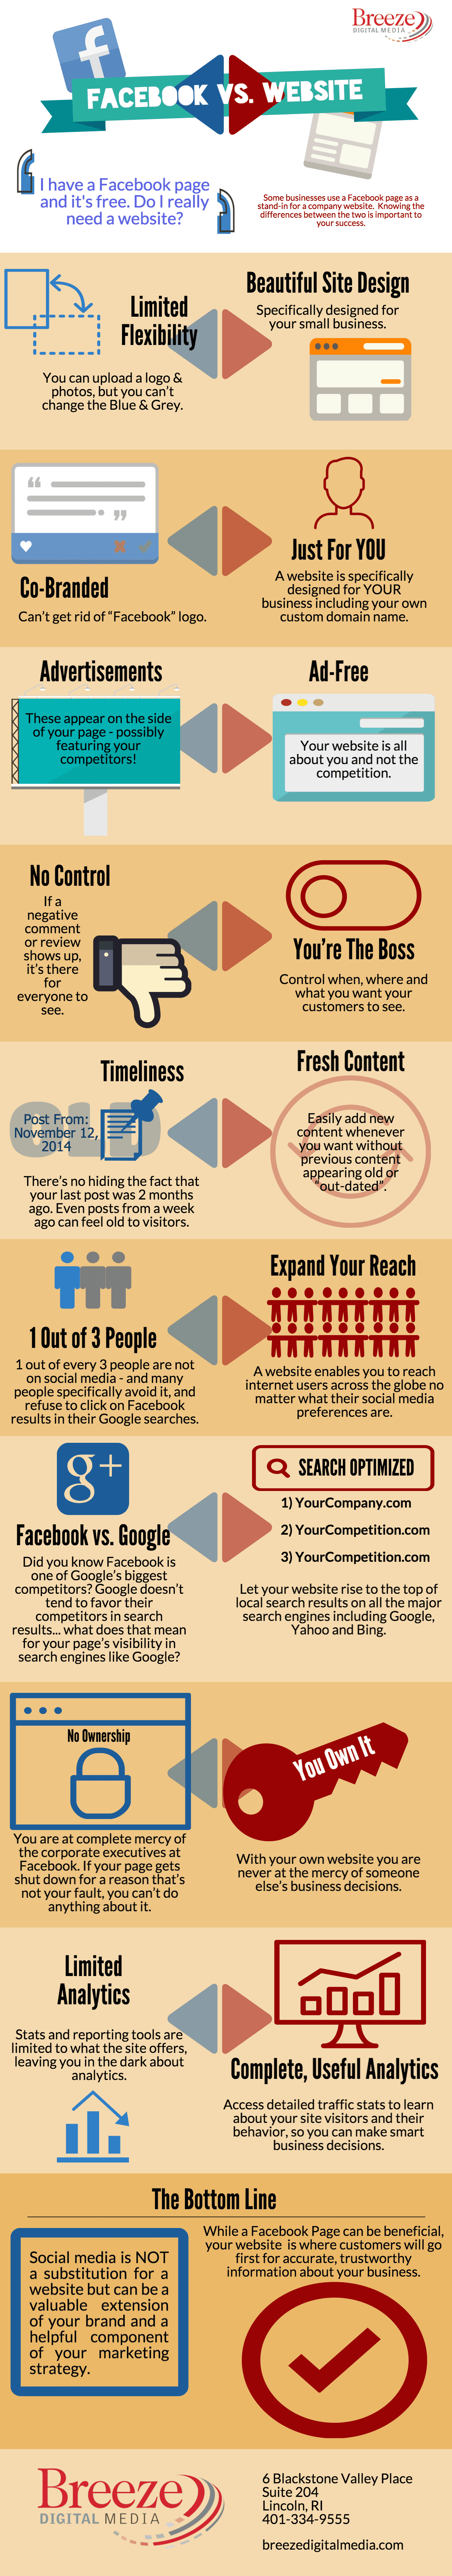 Facebook Page vs. A Website - Infographic